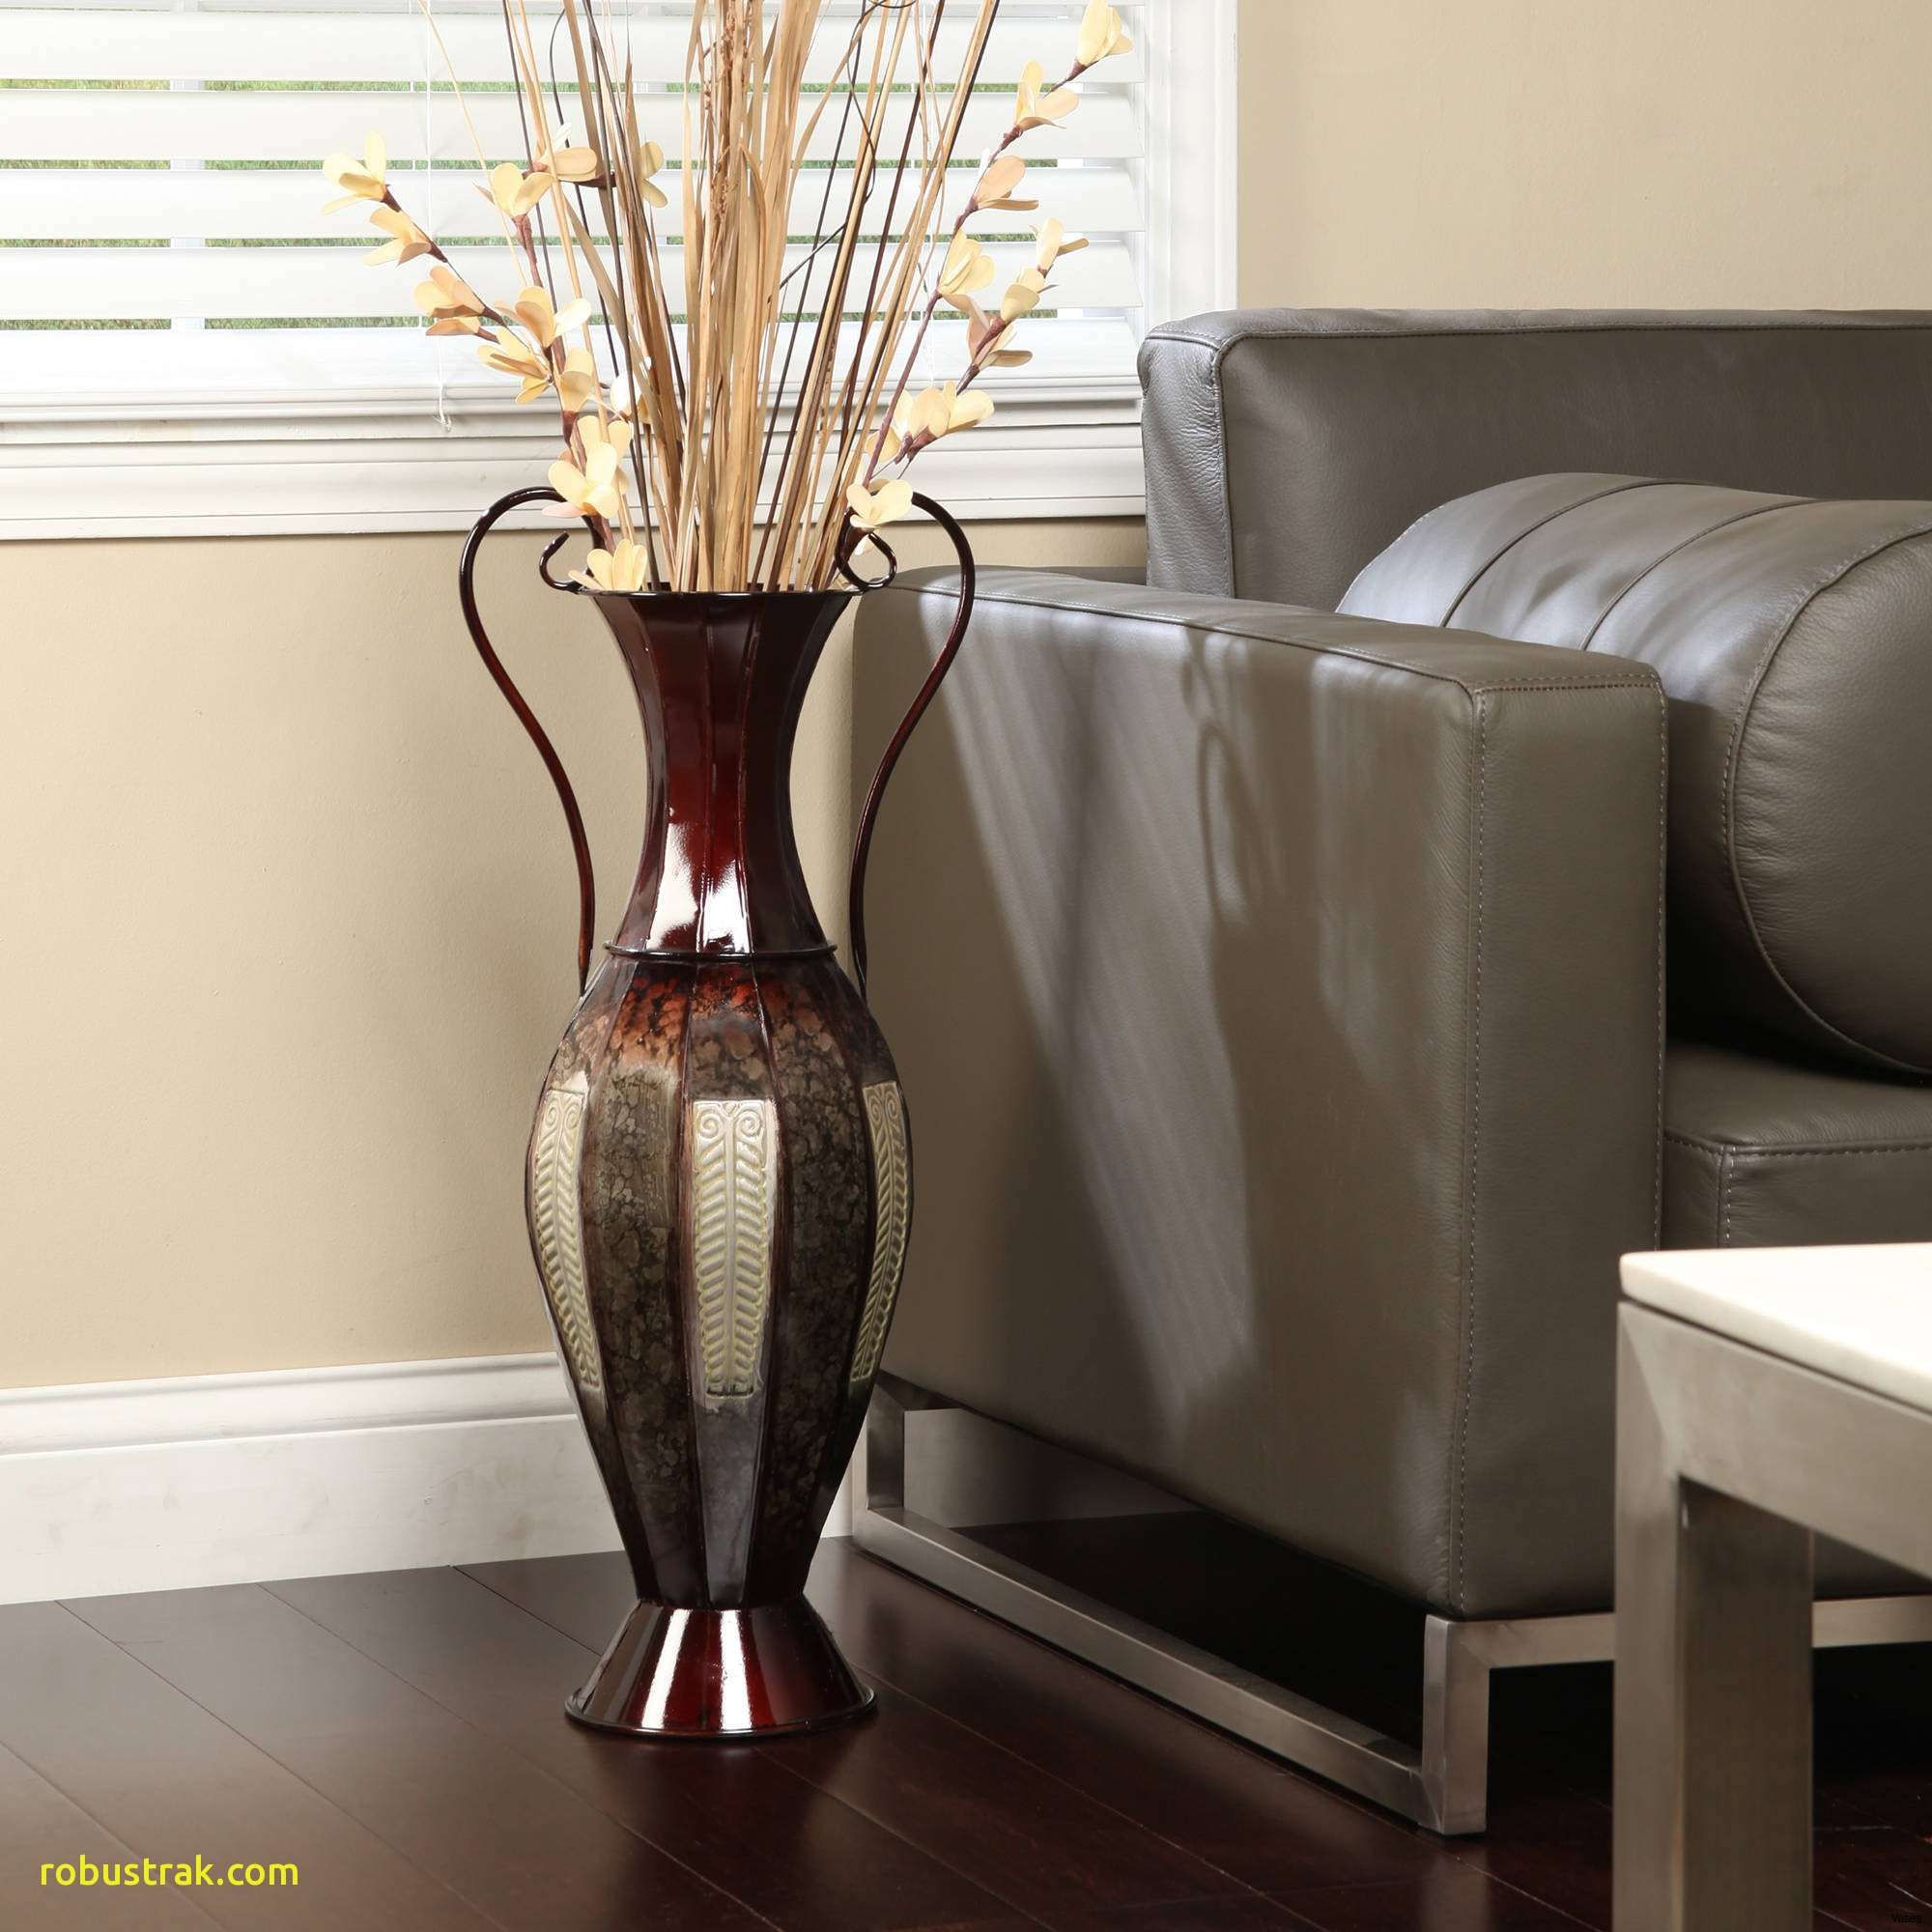 pier 1 red vase of 27 fall vase fillers the weekly world regarding new floor vase with branches